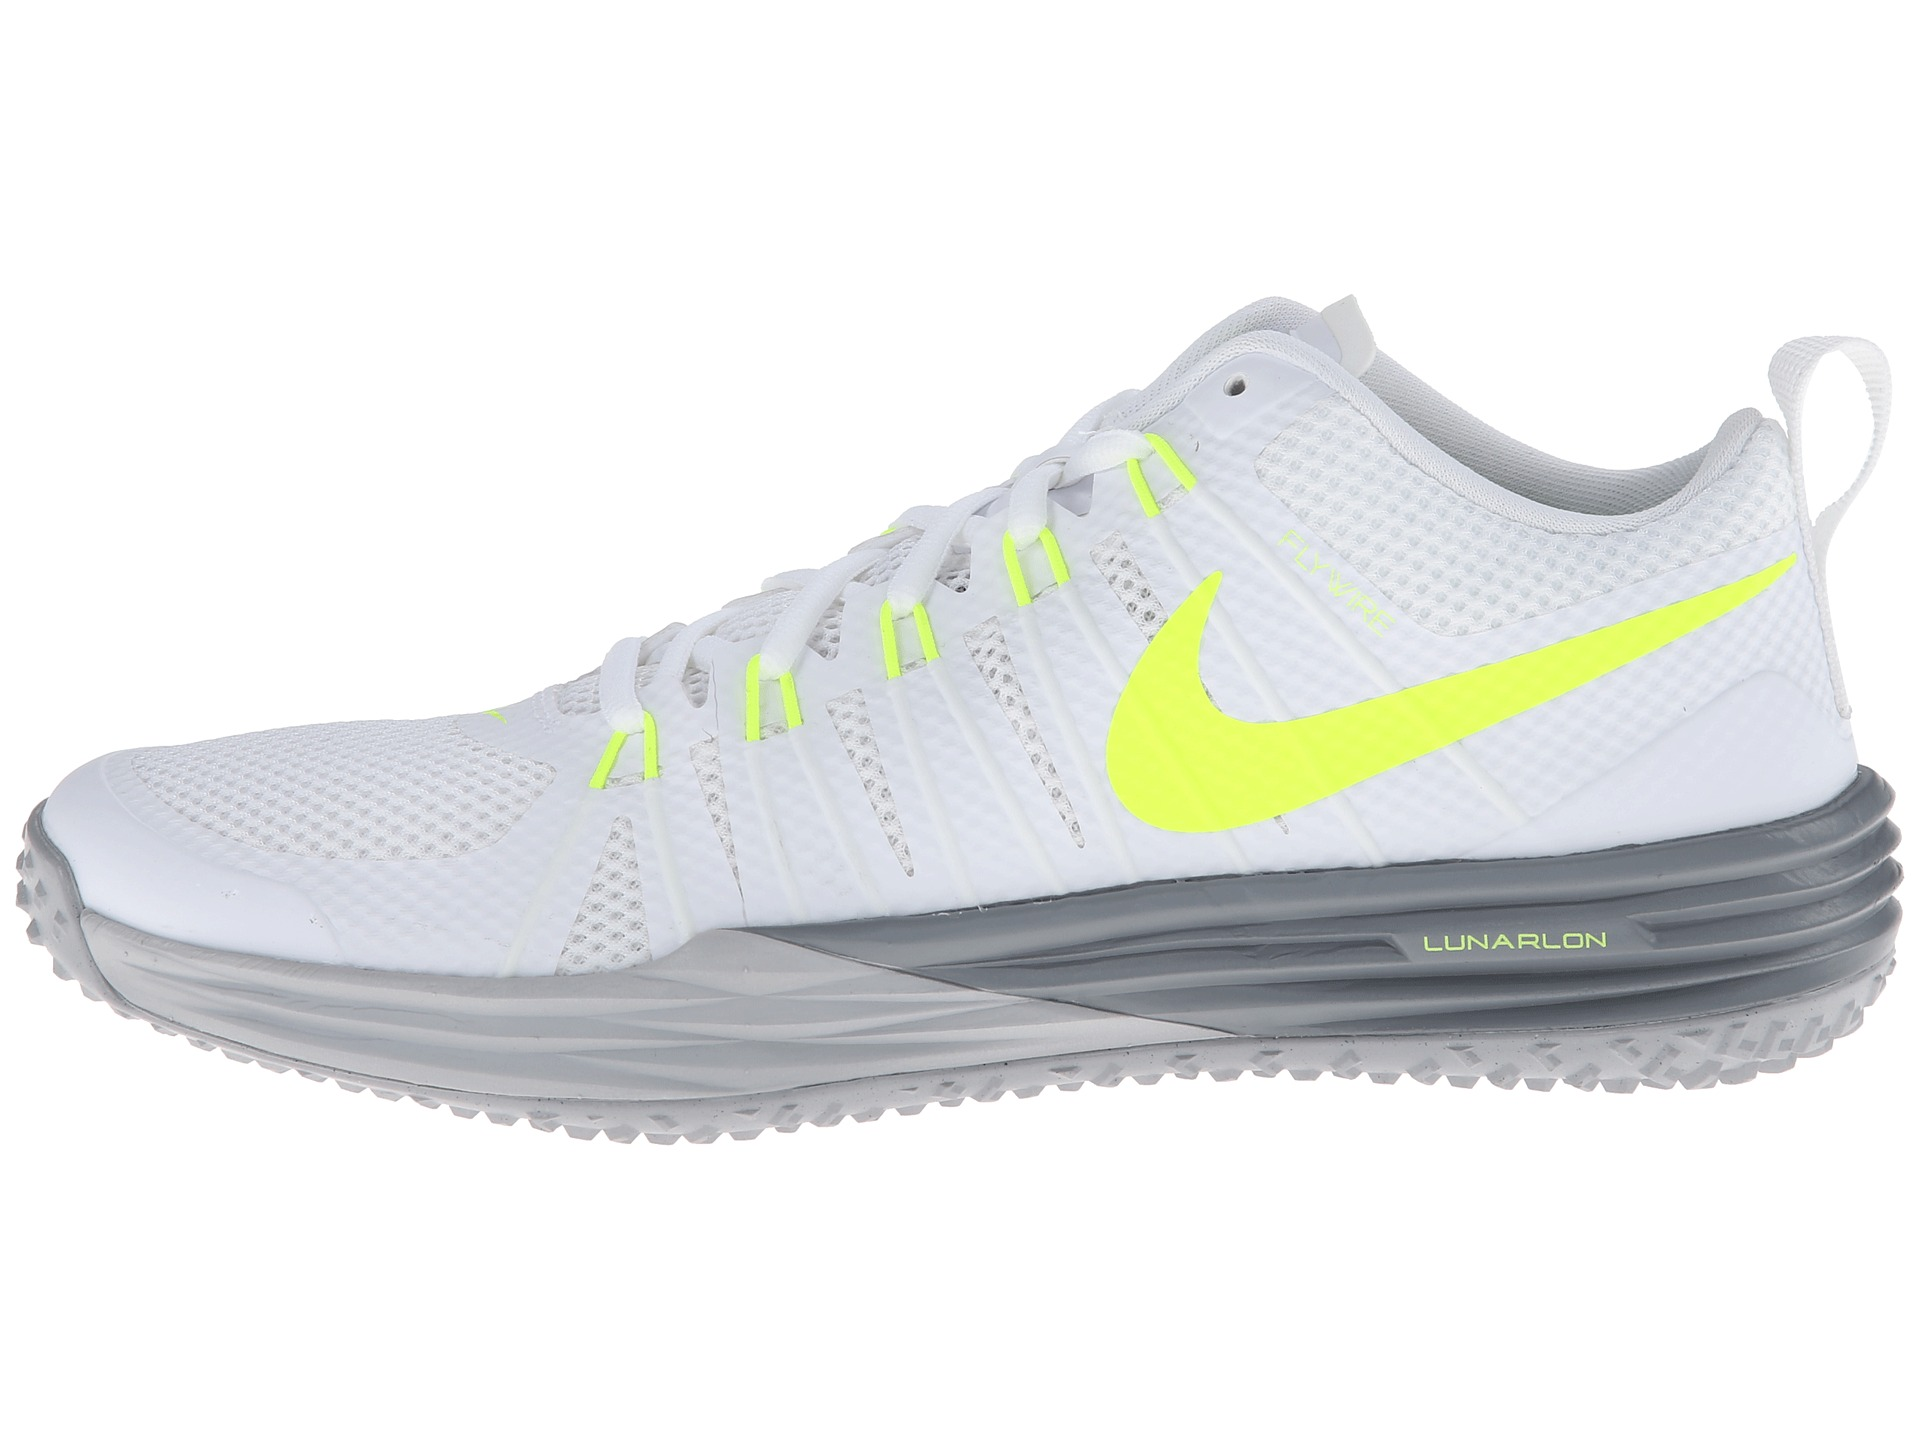 ... zappos; amazon 4a544 6767f ... nike lunar tr1 white wolf grey volt  shipped free at ...